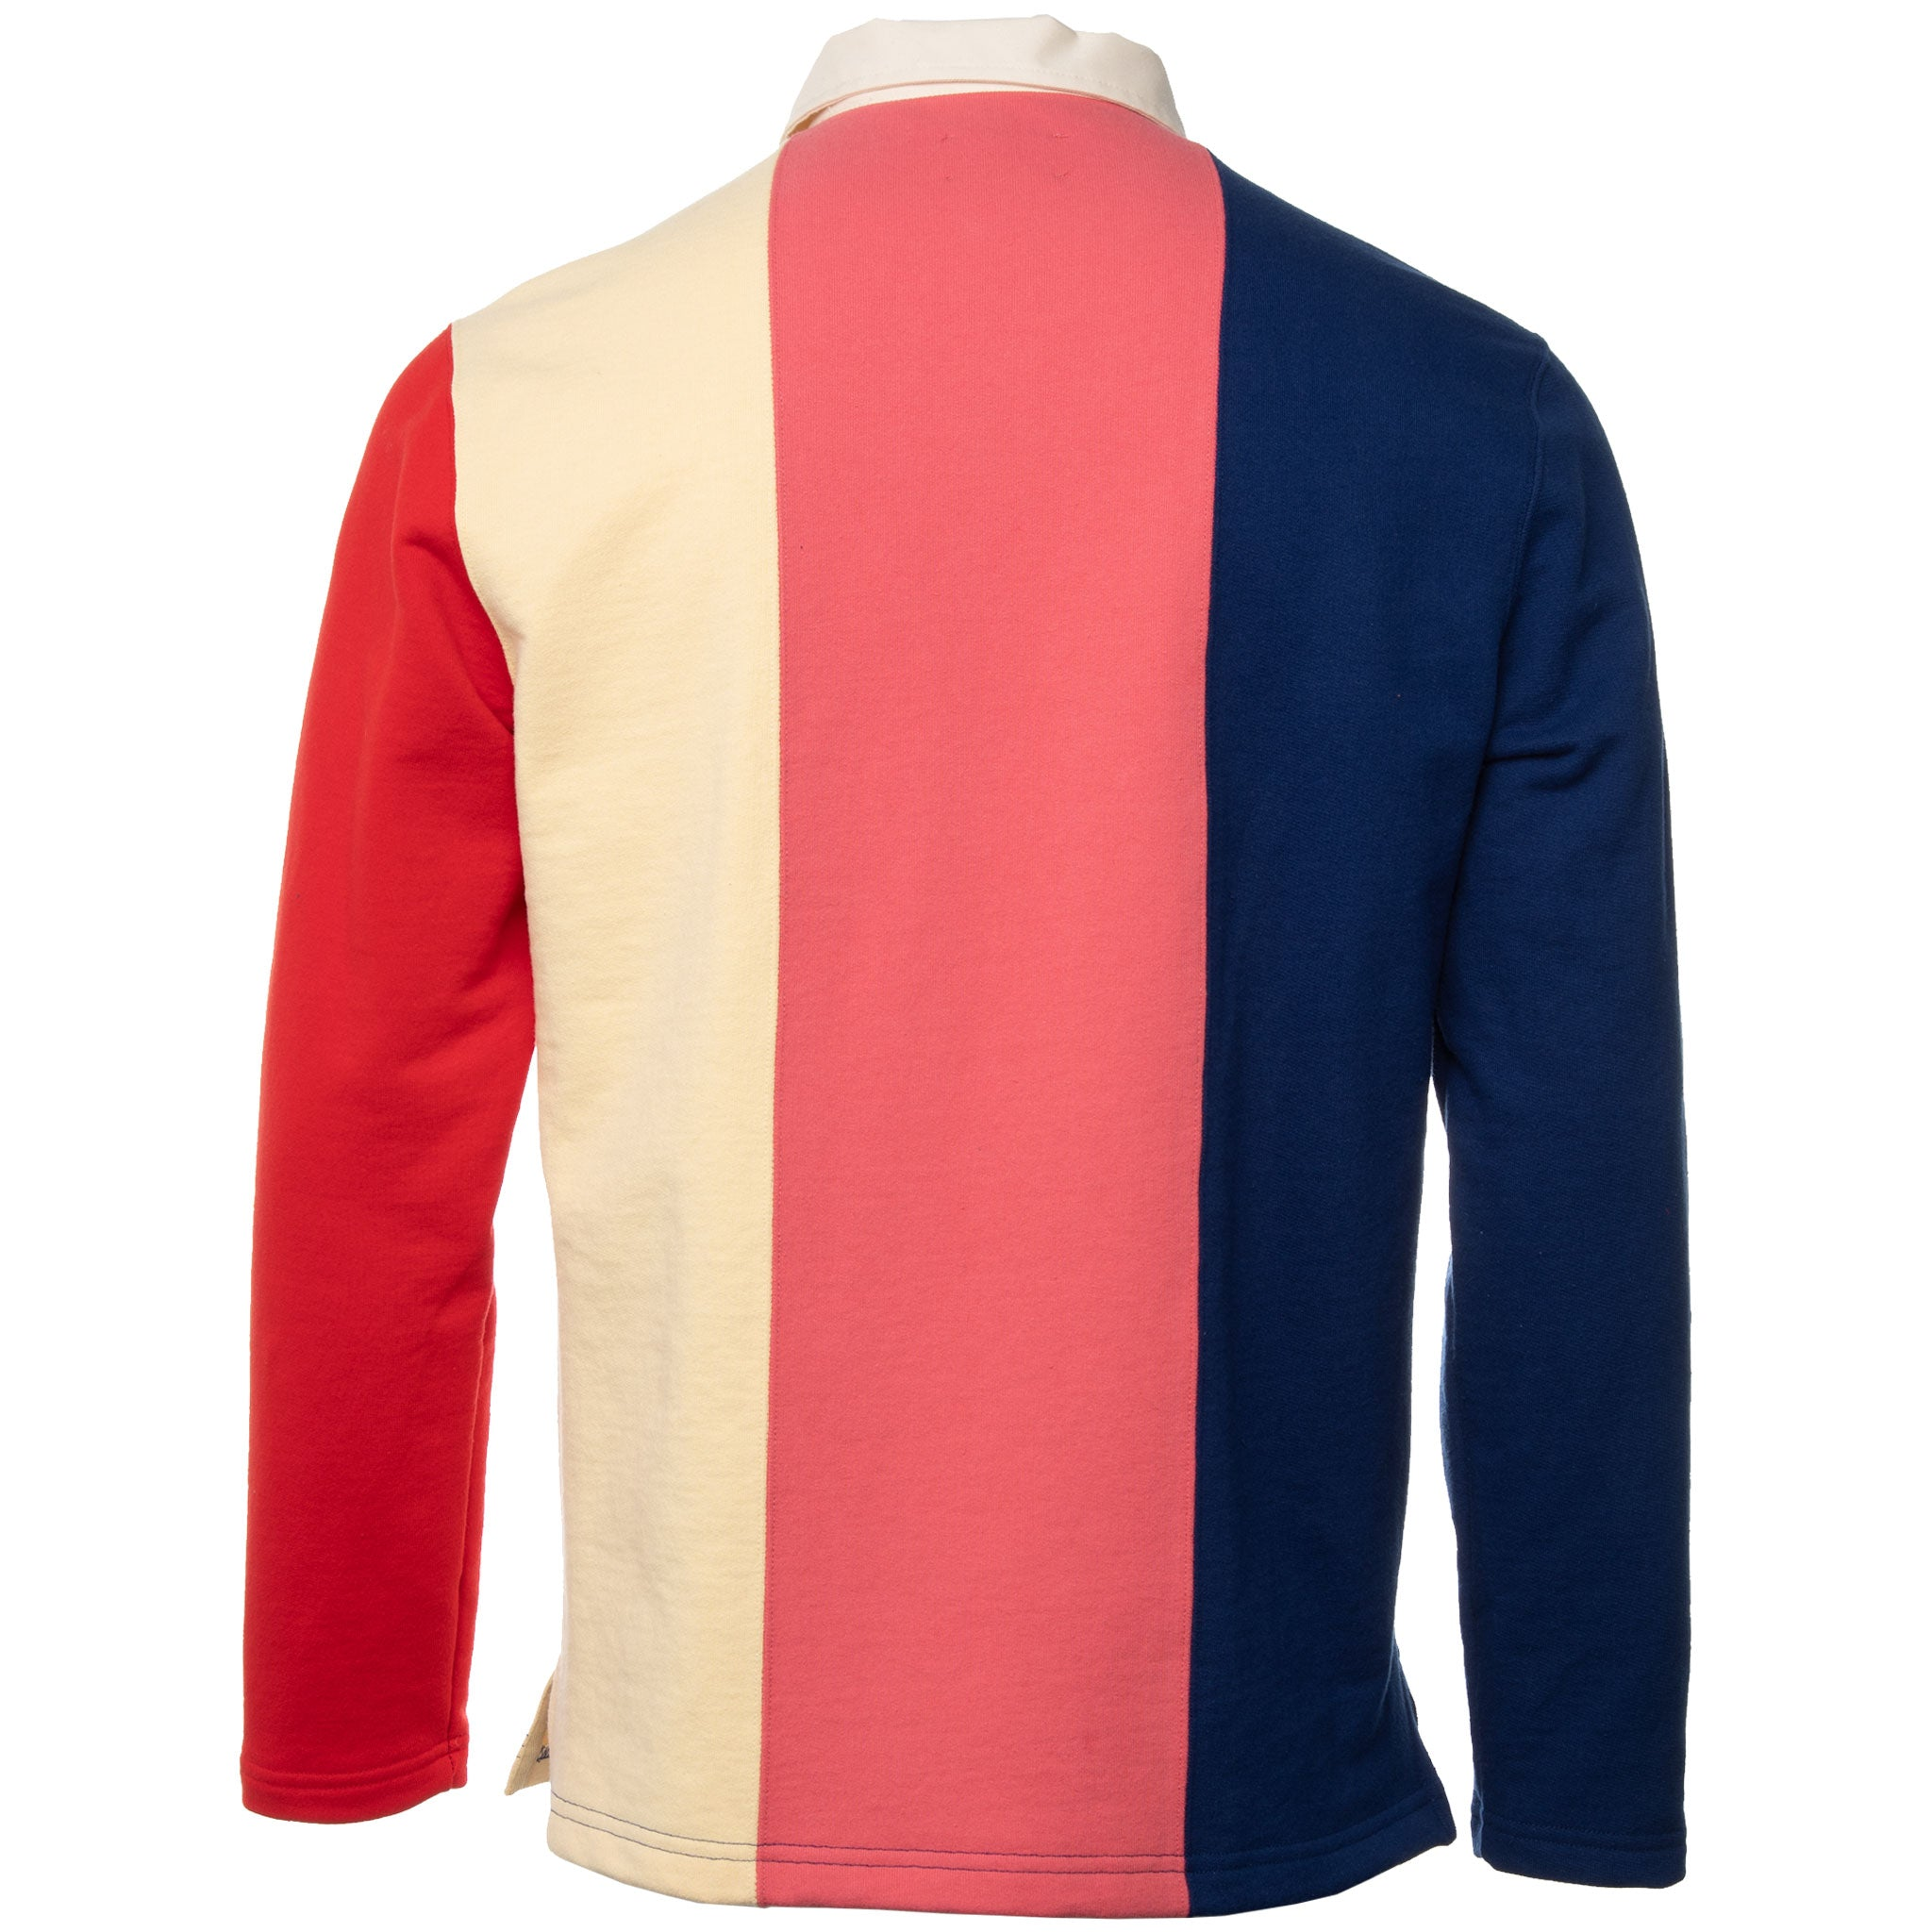 Aime Leon Dore - Navy and Pink French Terry Rugby Polo